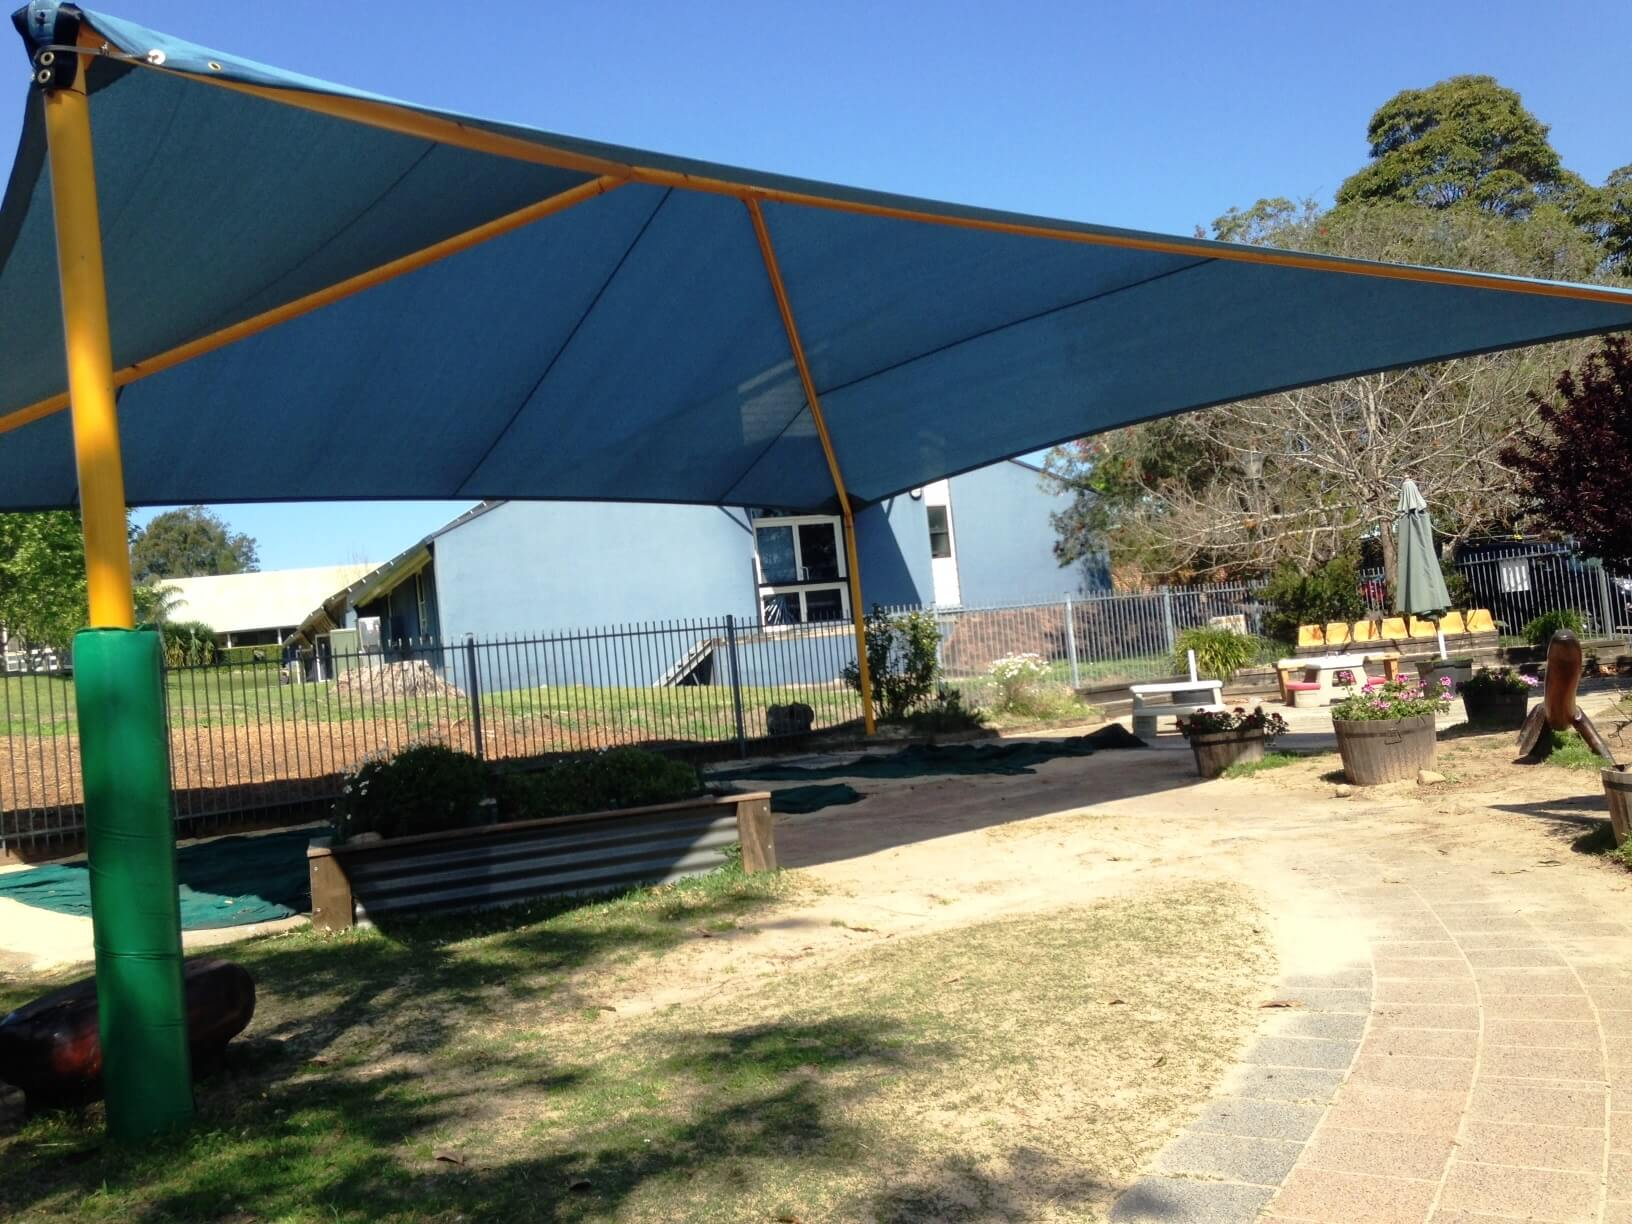 Shade Sails Cleaning Amp Awnings Repair In Sydney Central